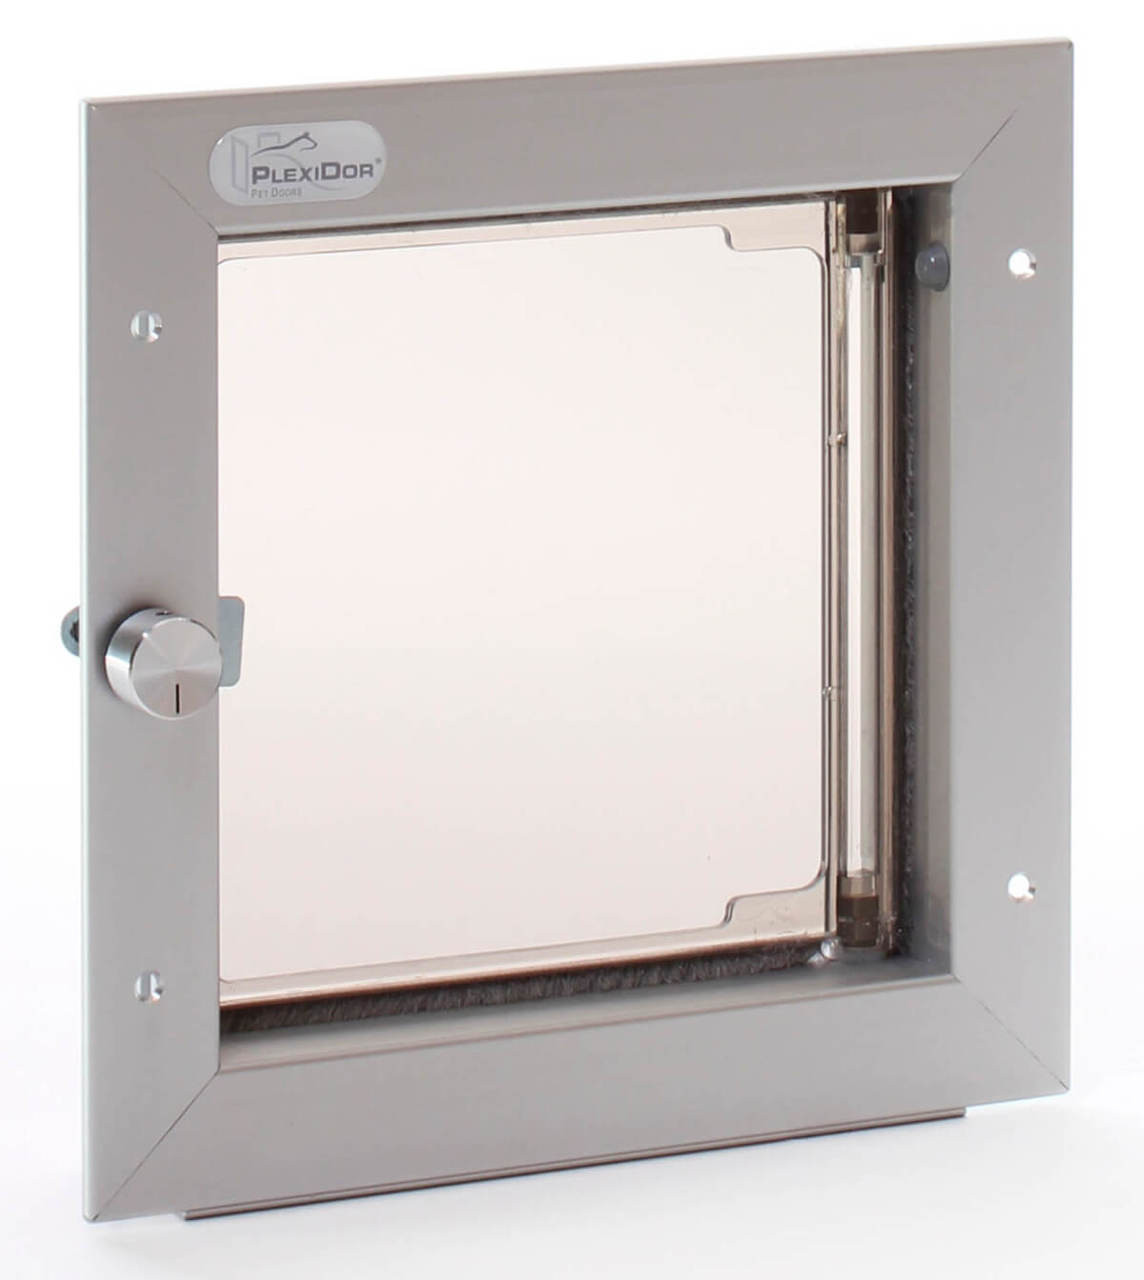 Plexidor cat doors in the small size have only one flap which swings sideways and has a knob lock with no locking cover